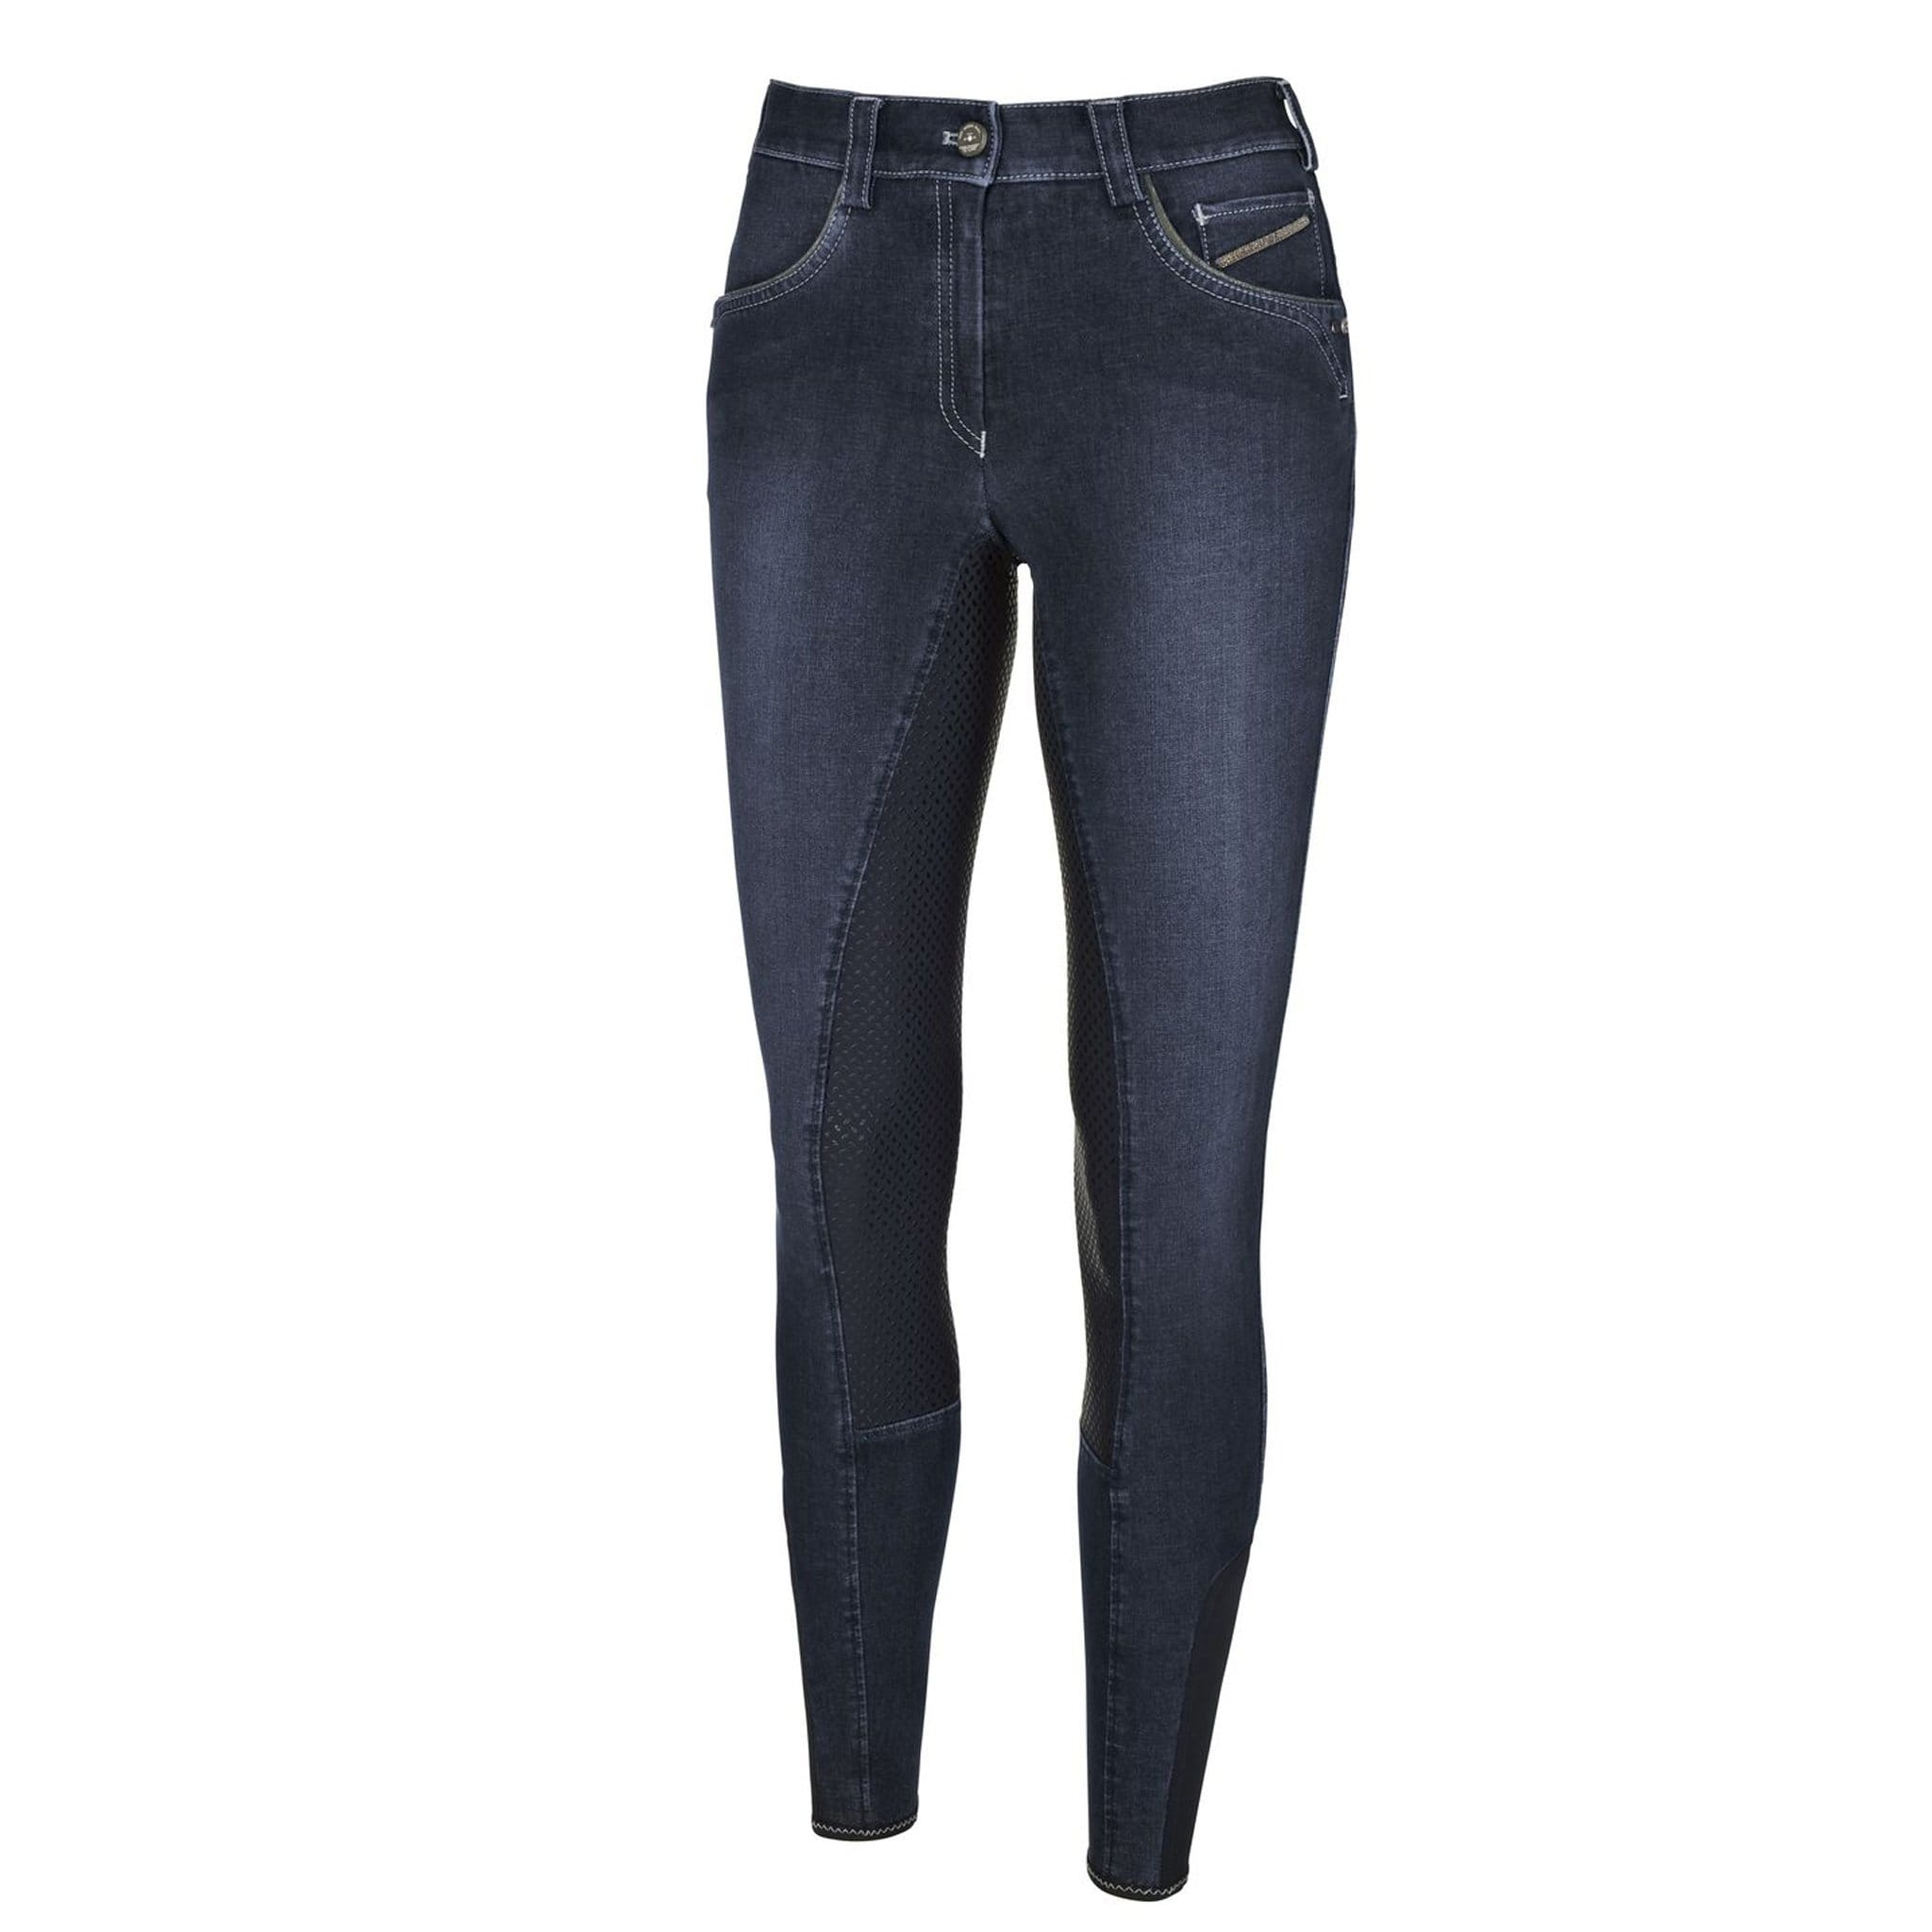 Pikeur Darjeen Grip Jean Denim Breeches Front 145016.